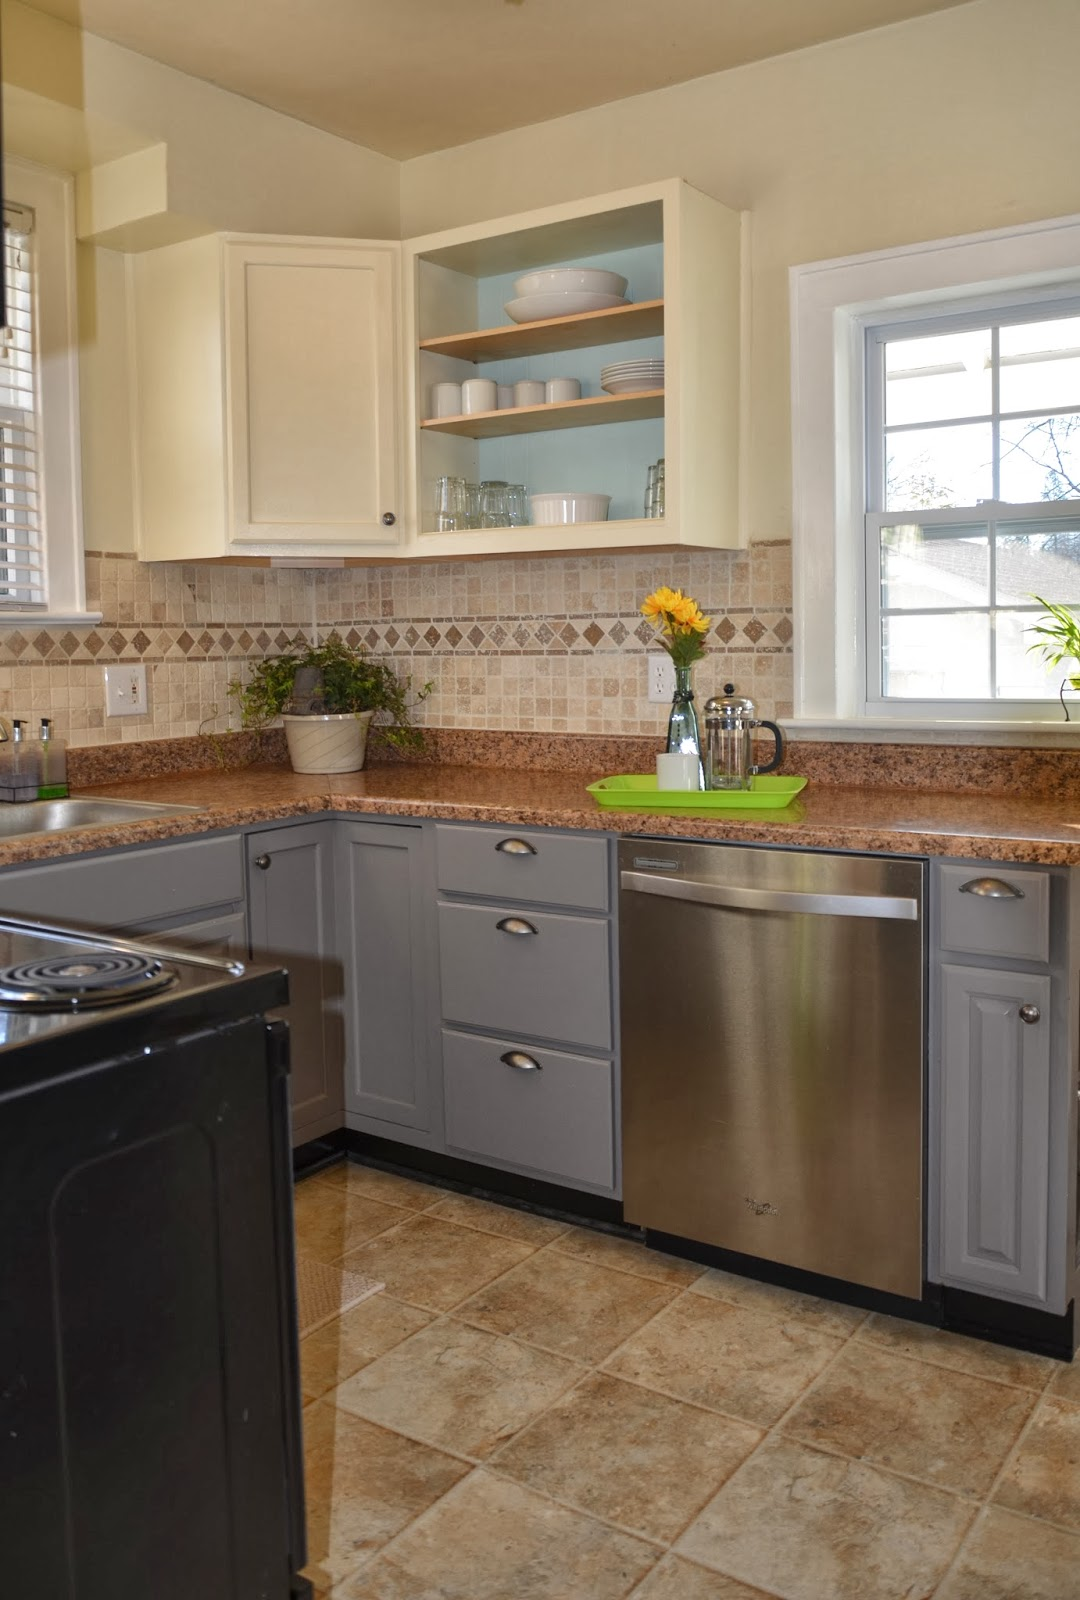 Remodelaholic diy refinished and painted cabinet reviews for Kitchen cabinet reviews 2015